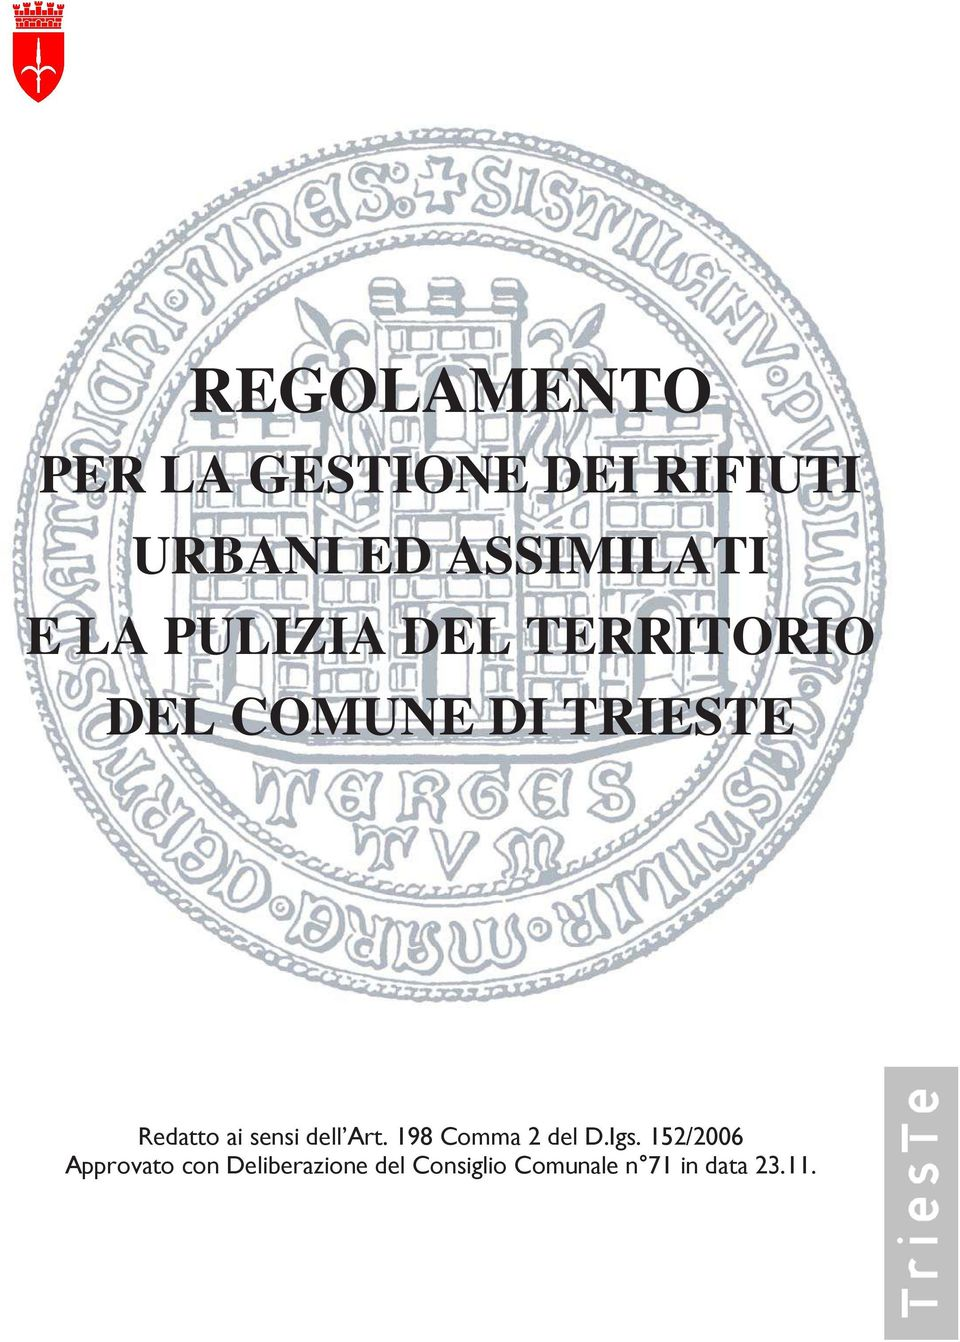 TRIESTE Redatto ai sensi dell Art. 198 Comma 2 del D.Igs.